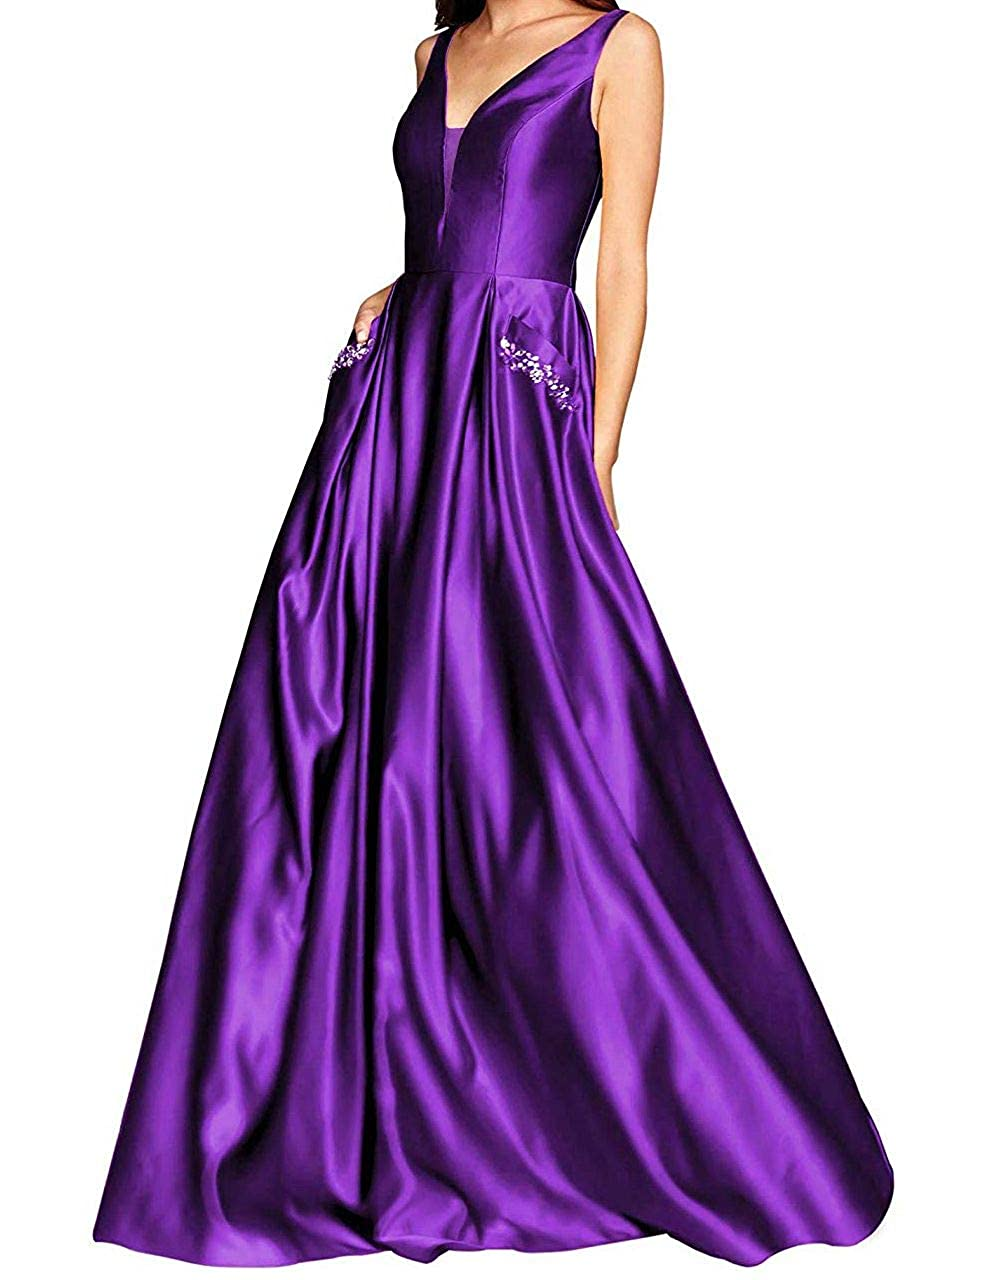 Lavender Yuki Isabelle Women's V Neck Prom Dresses A Line Beaded Satin Long Formal Evening Gown with Pockets